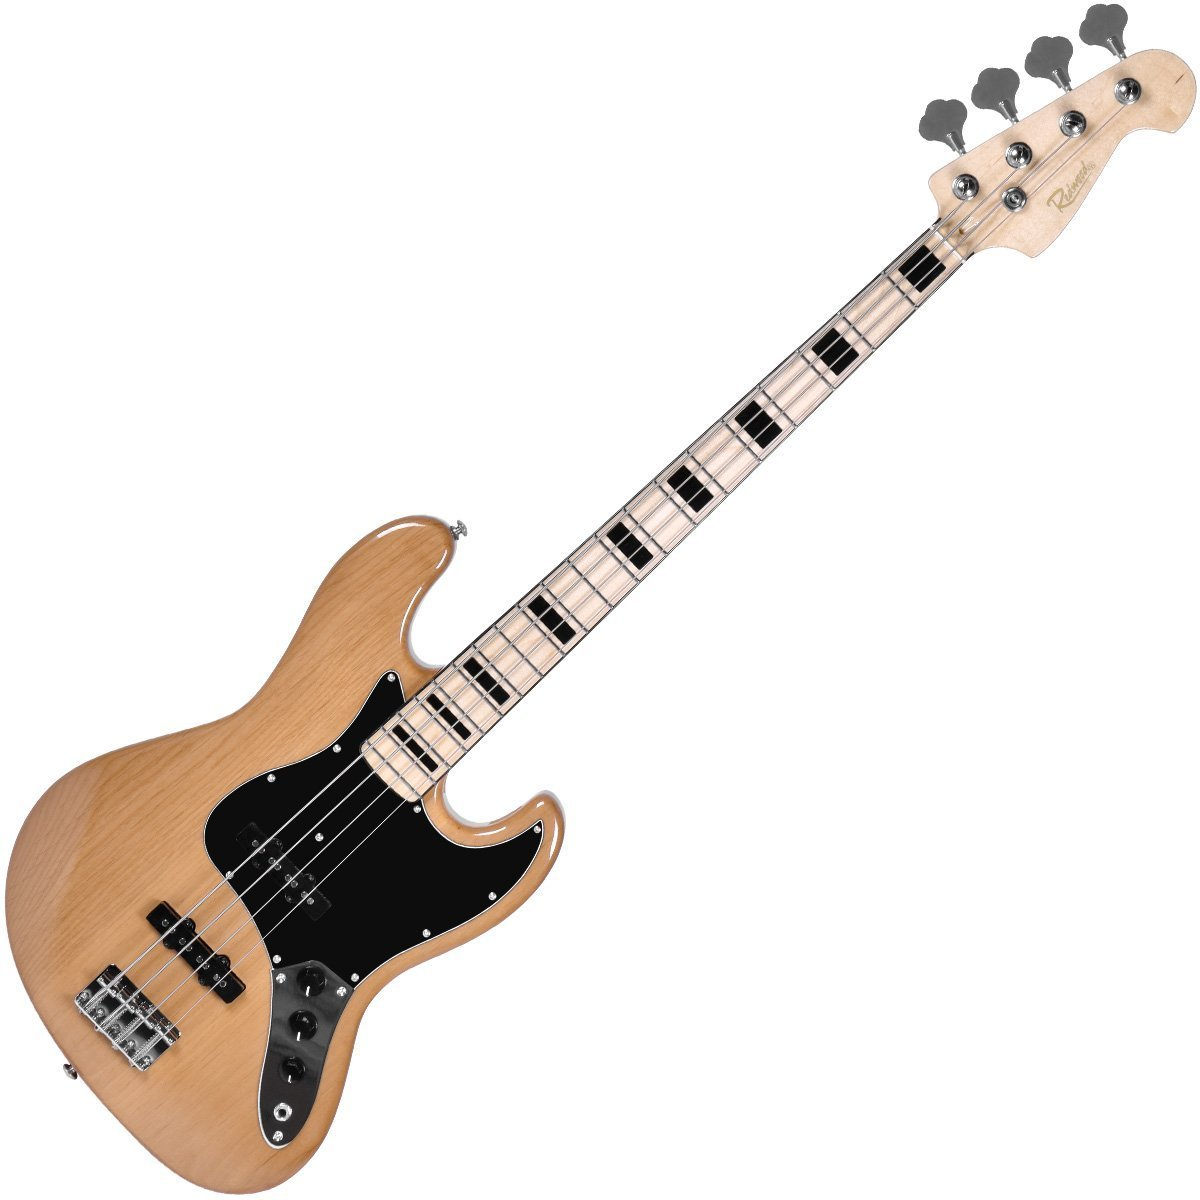 Redwood JB2 Electric Bass Guitar with Jazz Style Alder Body - Natural JB1